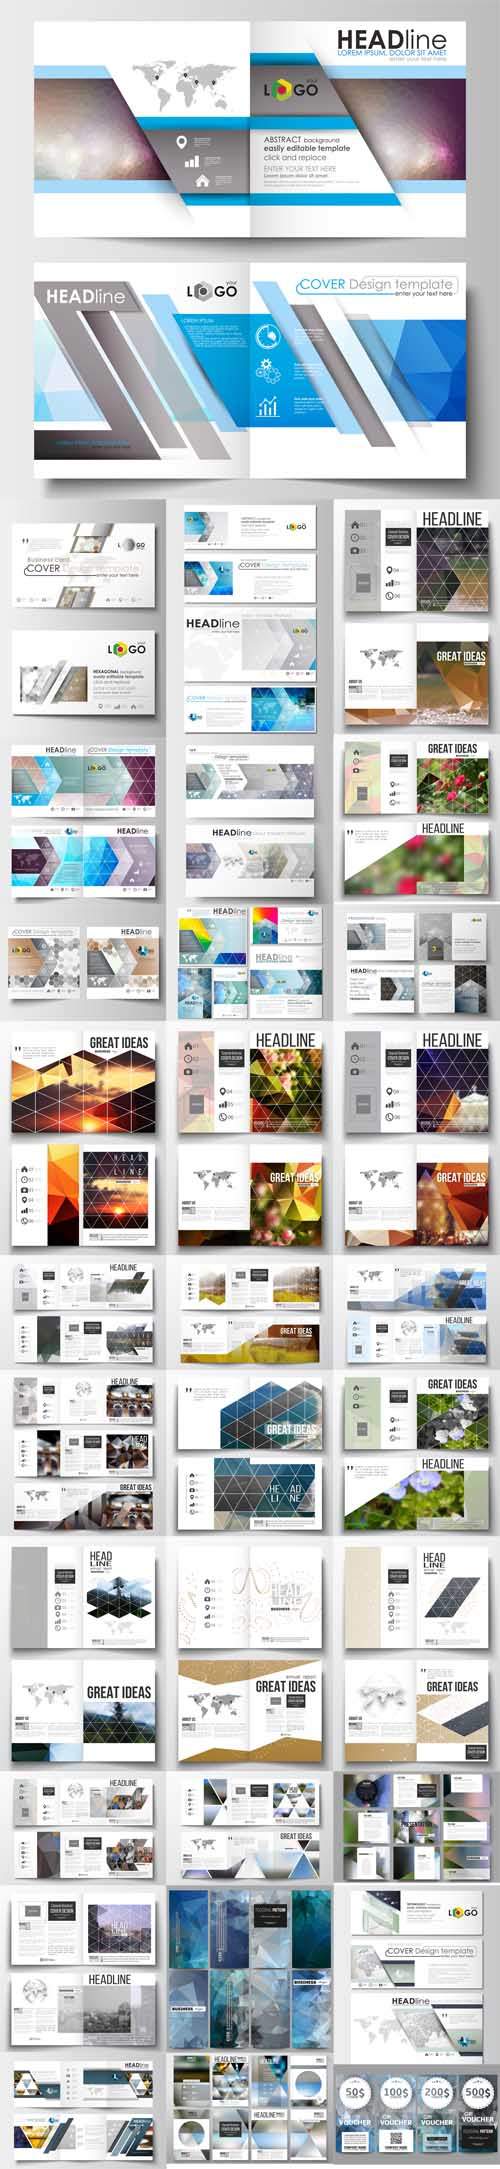 Vector 32 Annual report business templates for brochure, magazine, flyer or booklet 3